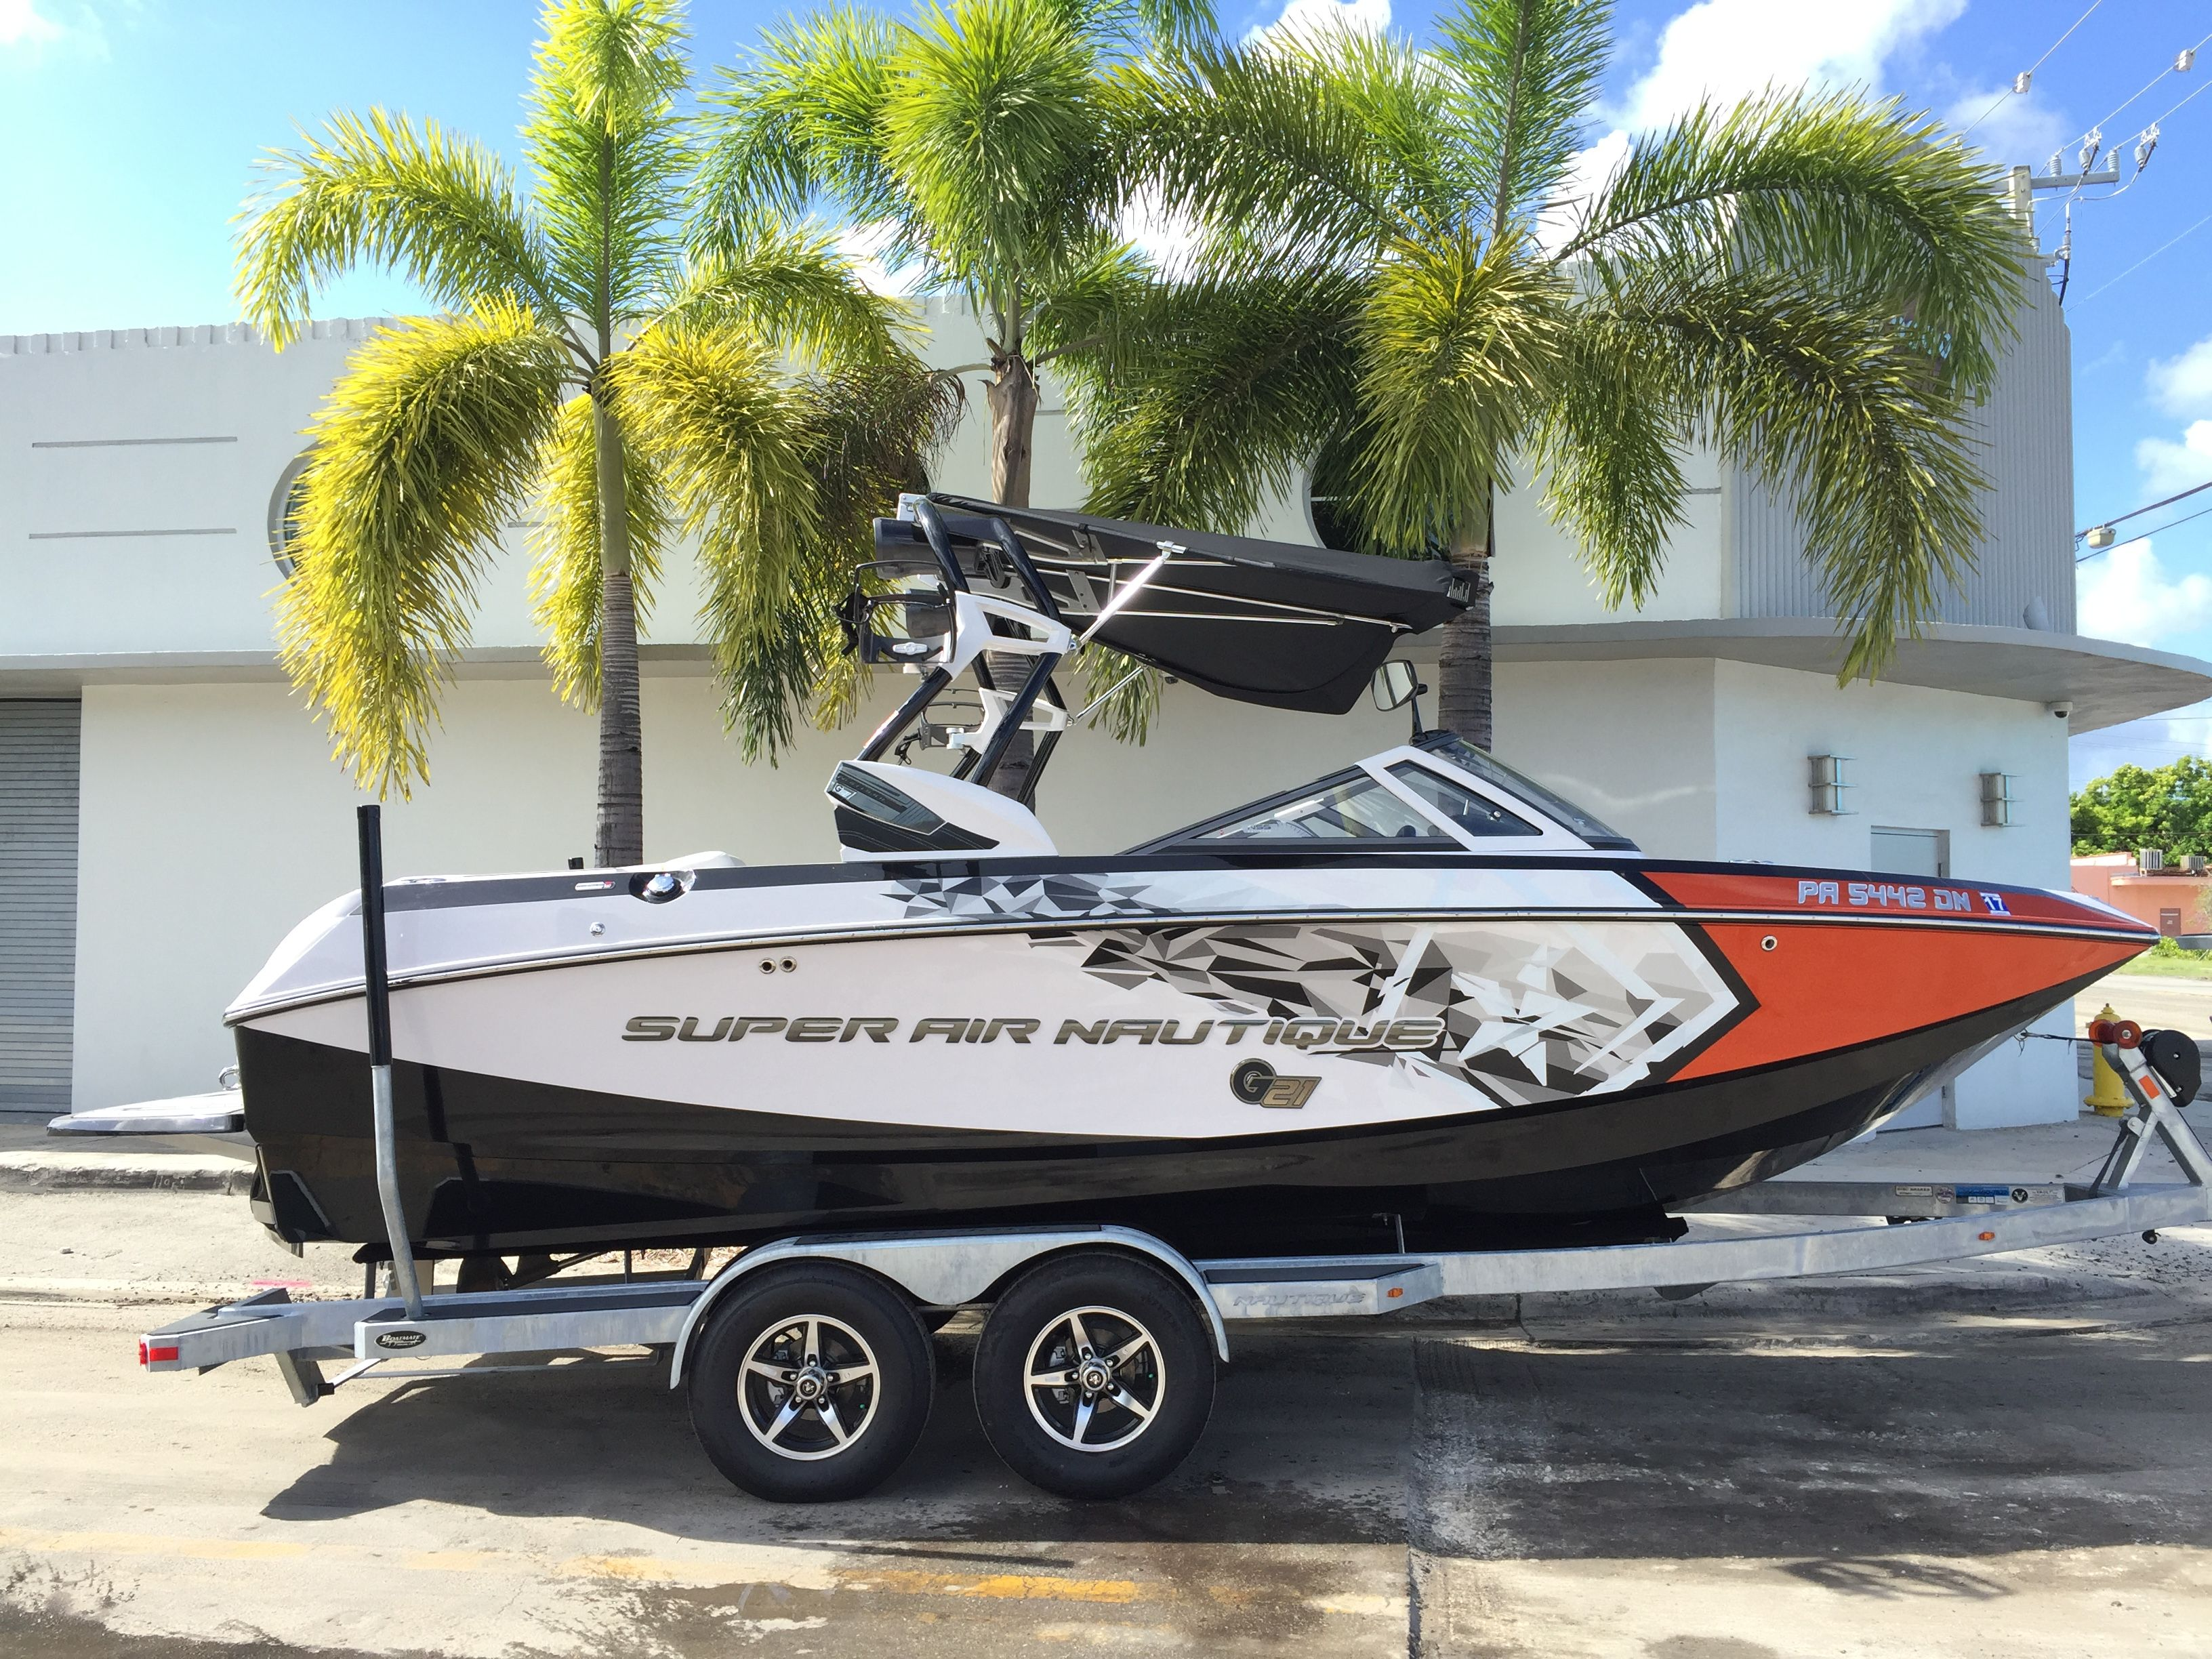 2015 Super Air Nautique G21 Find more boats here Boat